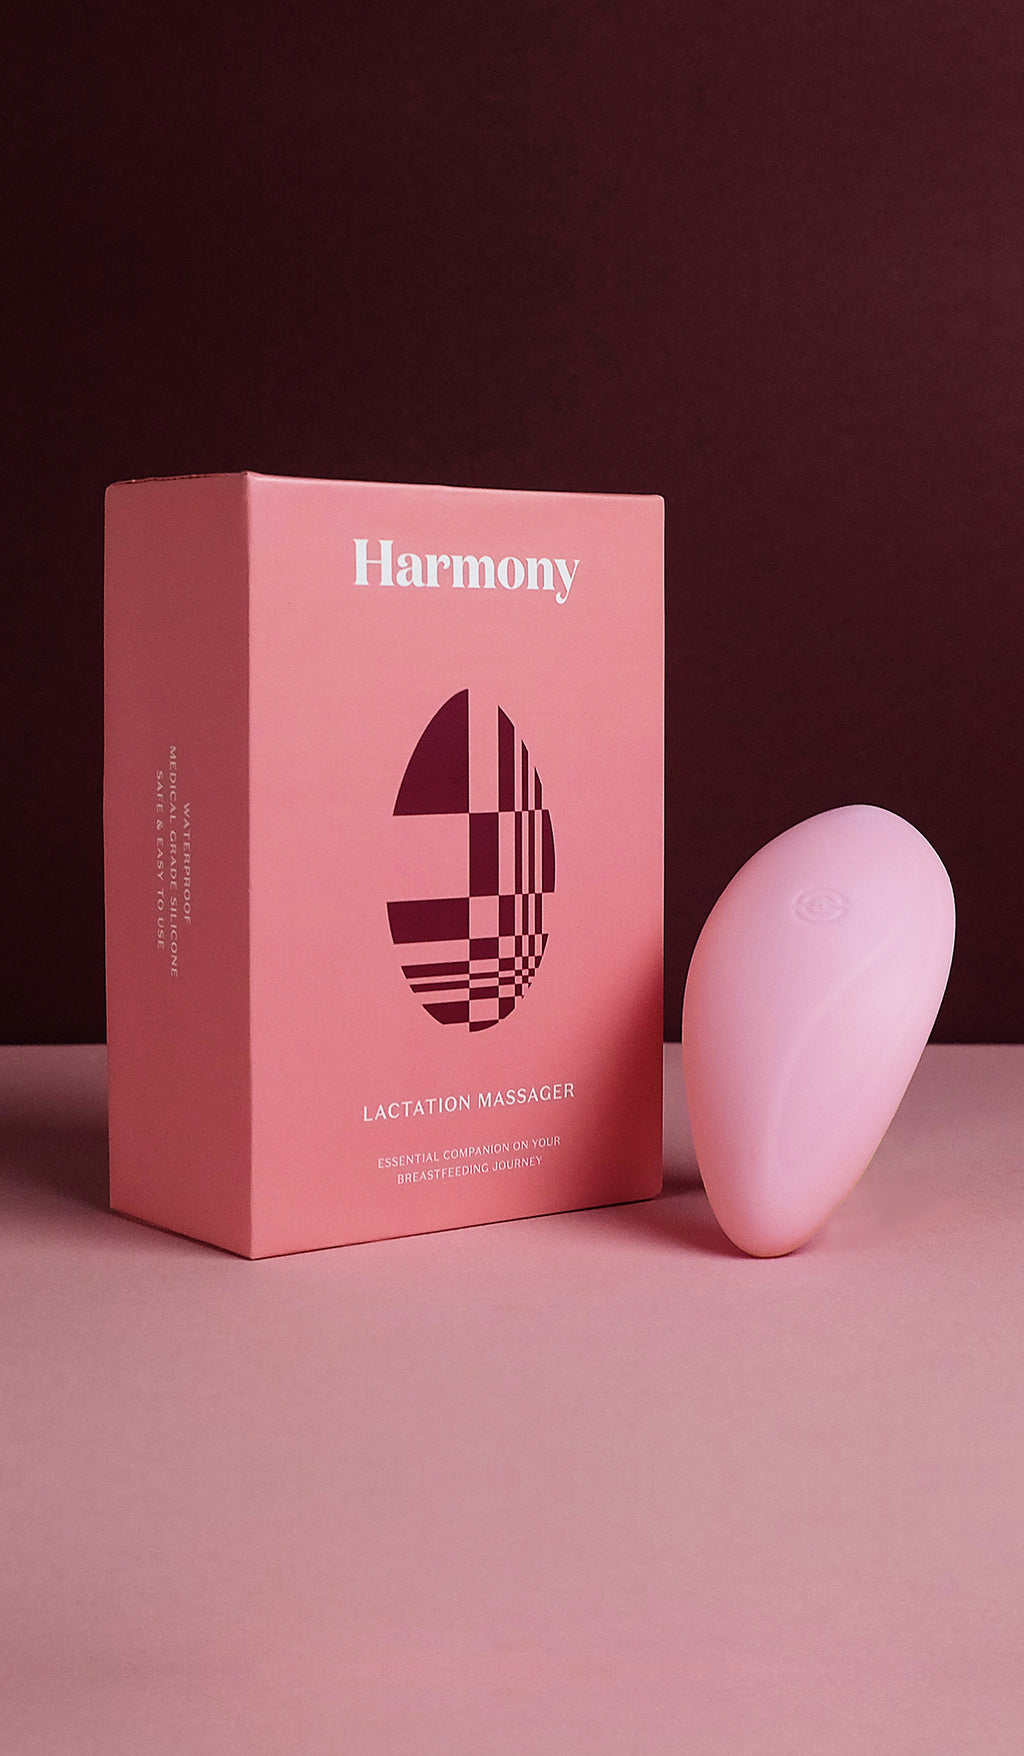 HARMONY LACTATION MASSAGER